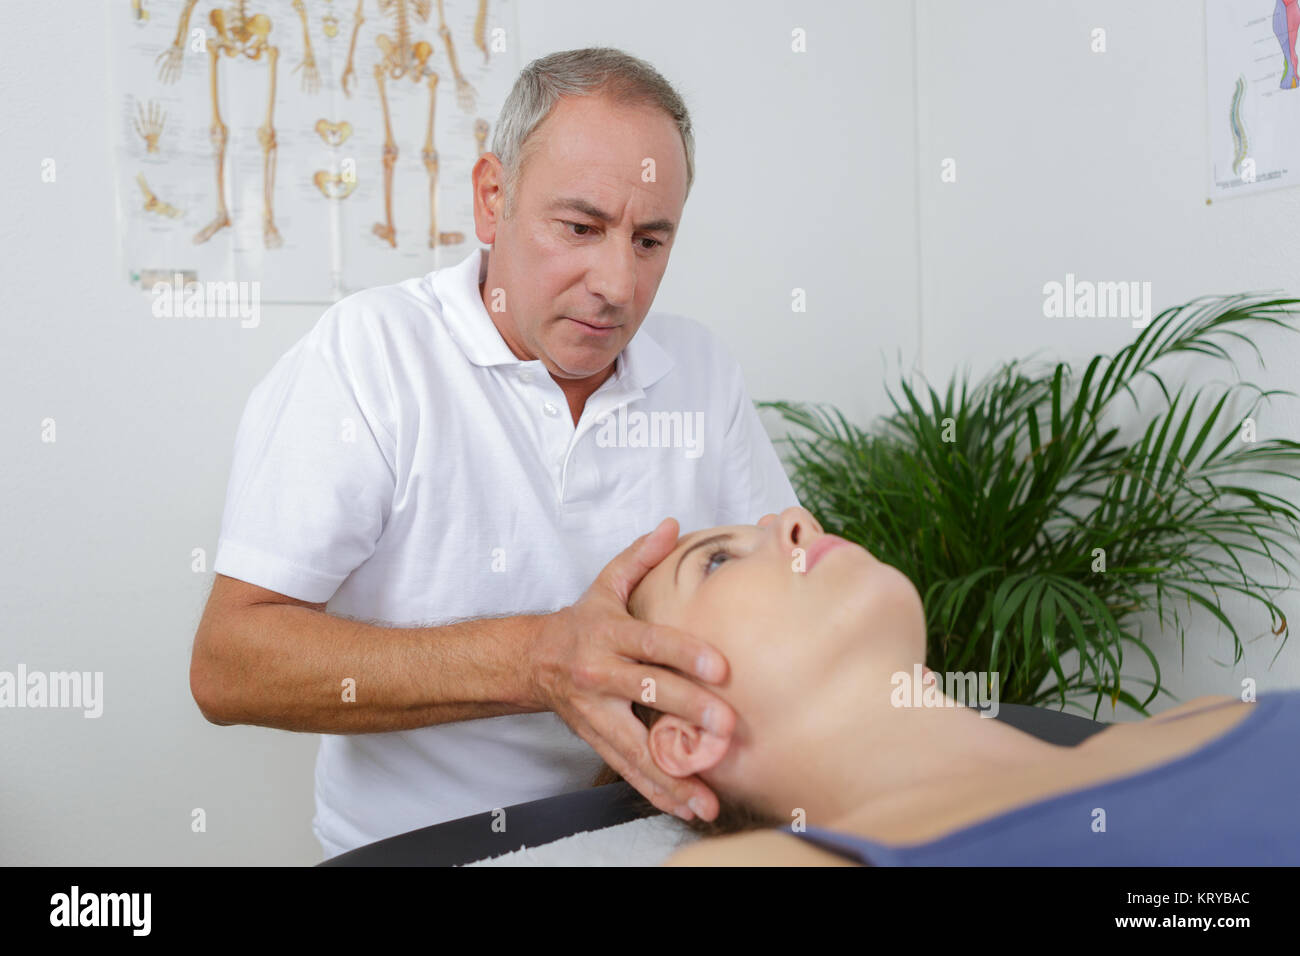 physiotherapist massages holding male clients head - Stock Image